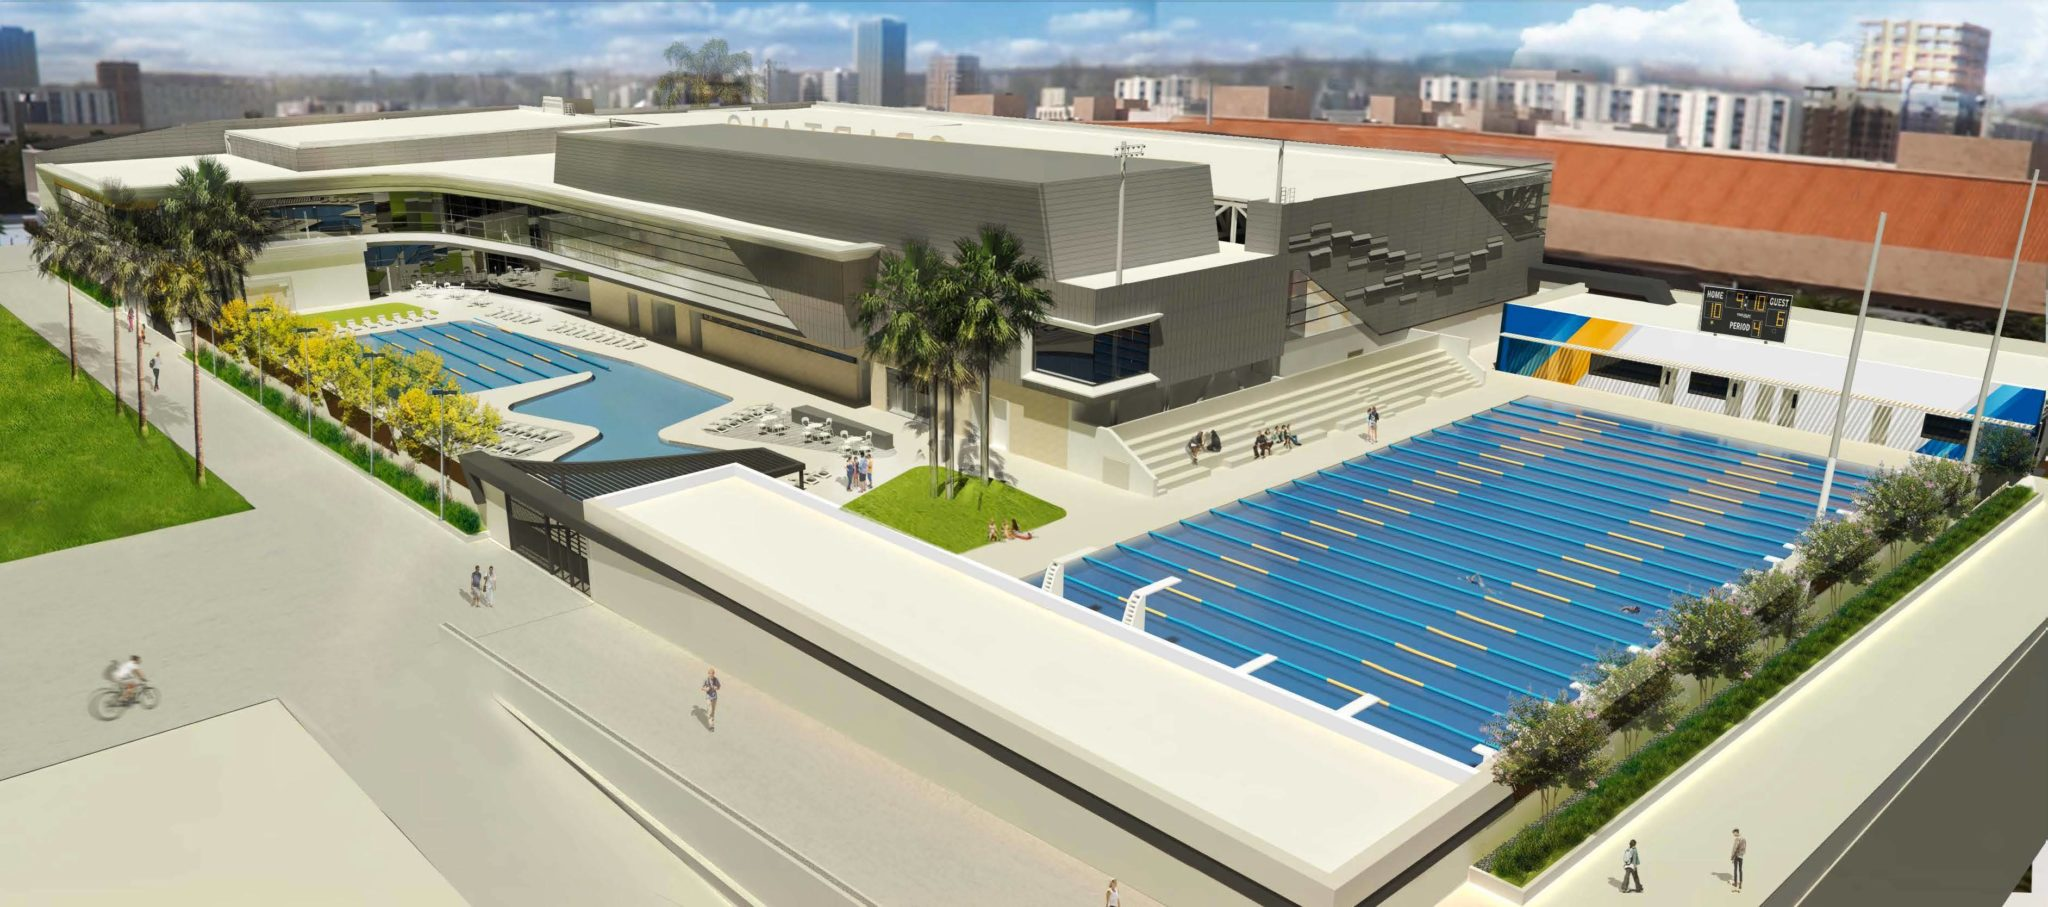 San jose state breaks ground on new on campus aquatic center for San diego state university swimming pool